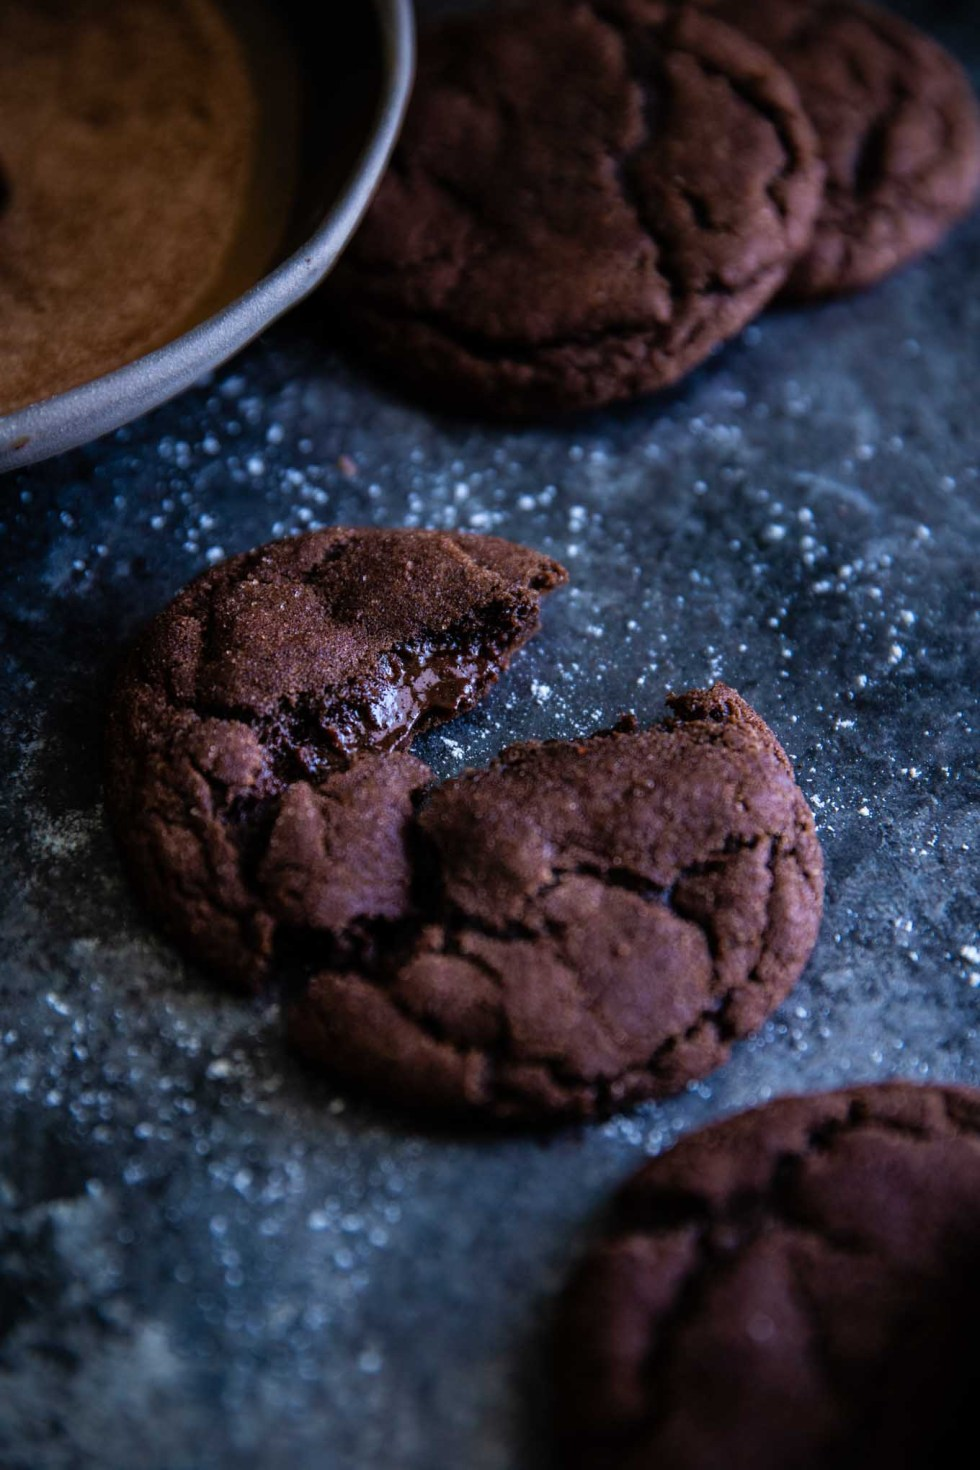 A snickerdiablo cookie broken in half with red chile ganache oozing out of the middle